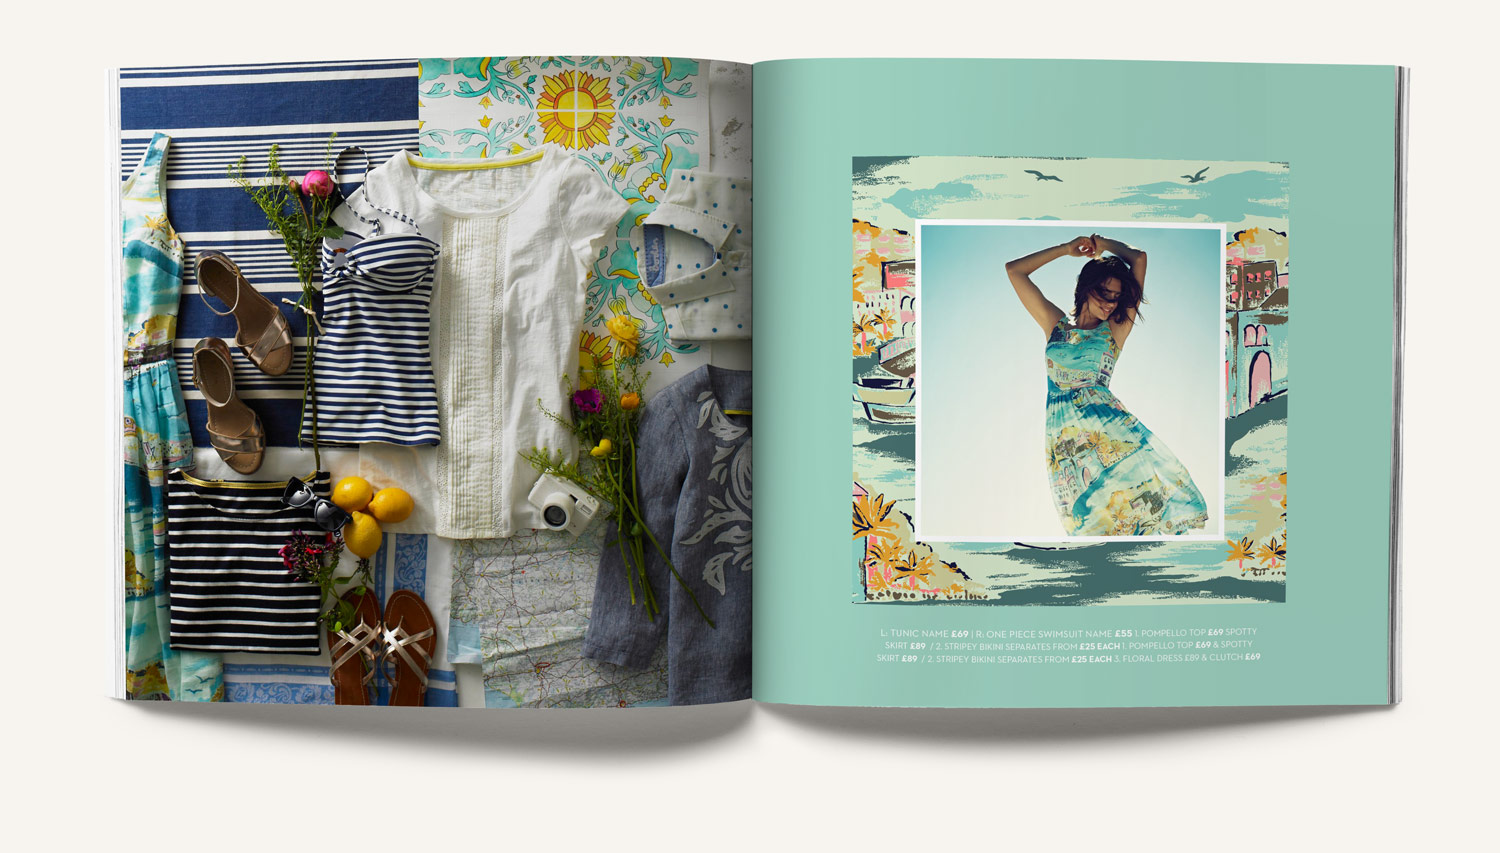 Boden Summer Accessories Press booklet with laydown photography, pattern borders. Design by Brittany Hurdle